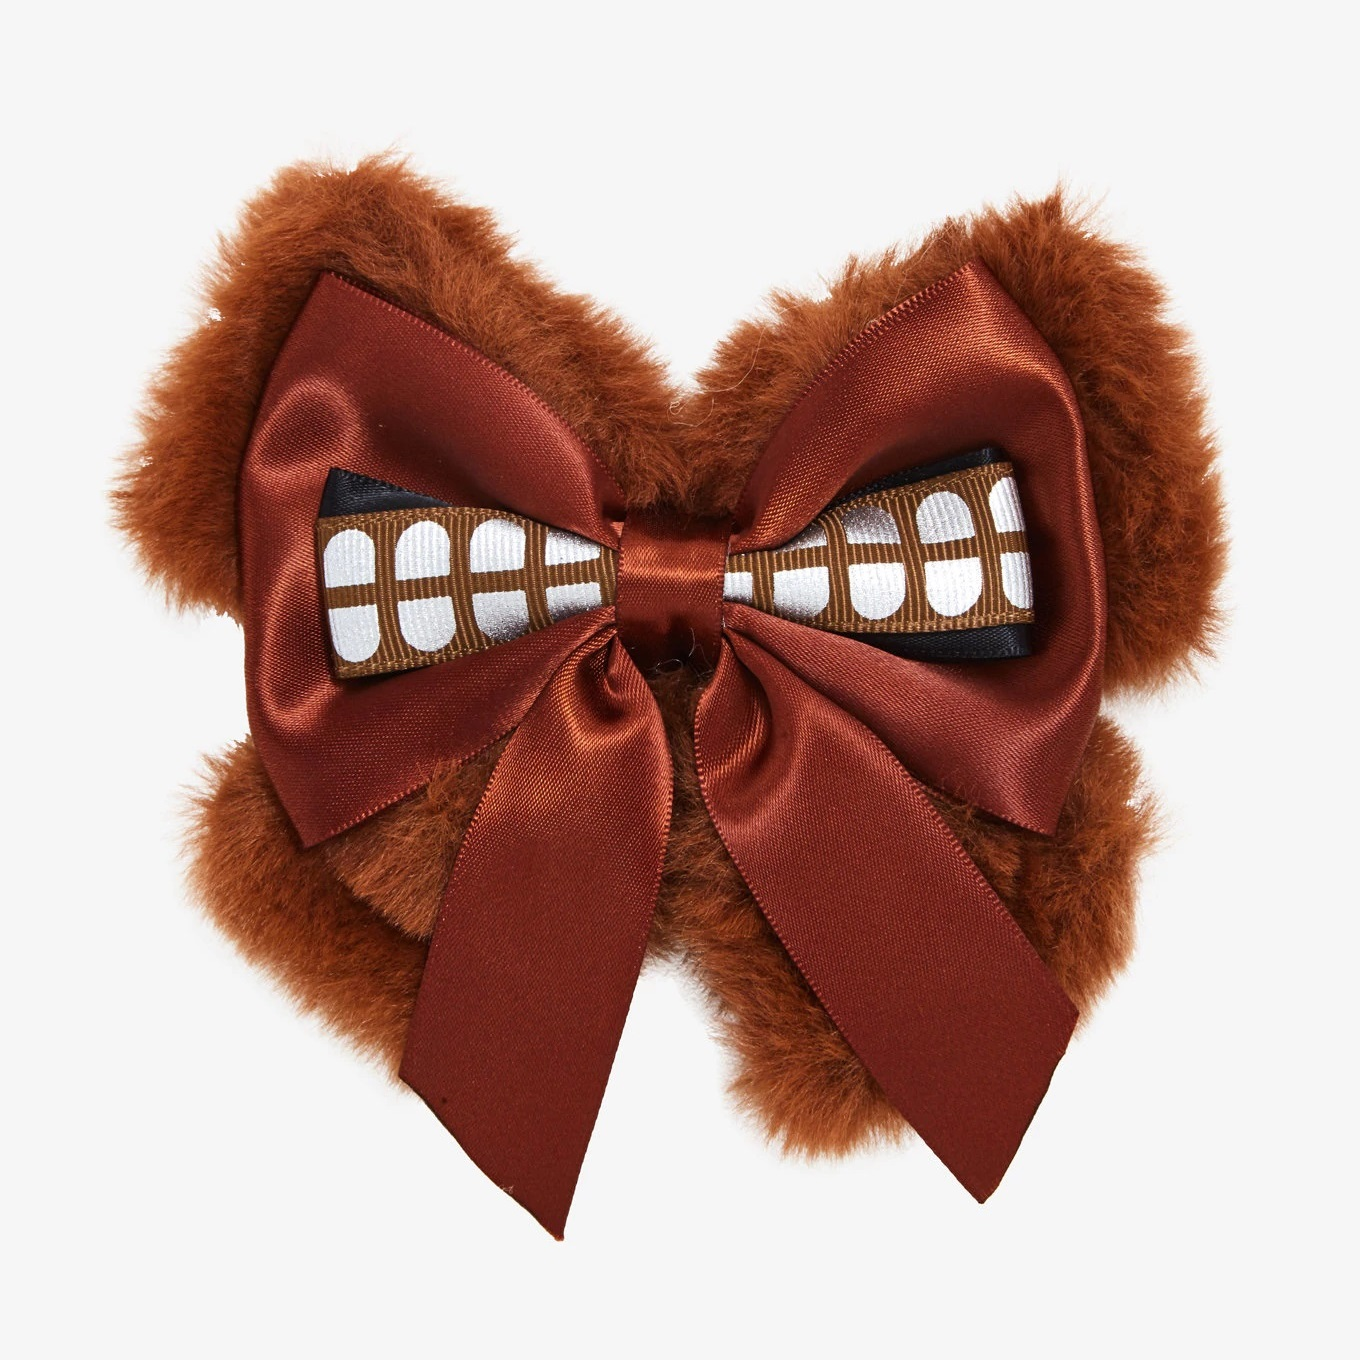 Star Wars Chewbacca Fuzzy Faux Fur Cosplay Style Hair Bow at Hot Topic